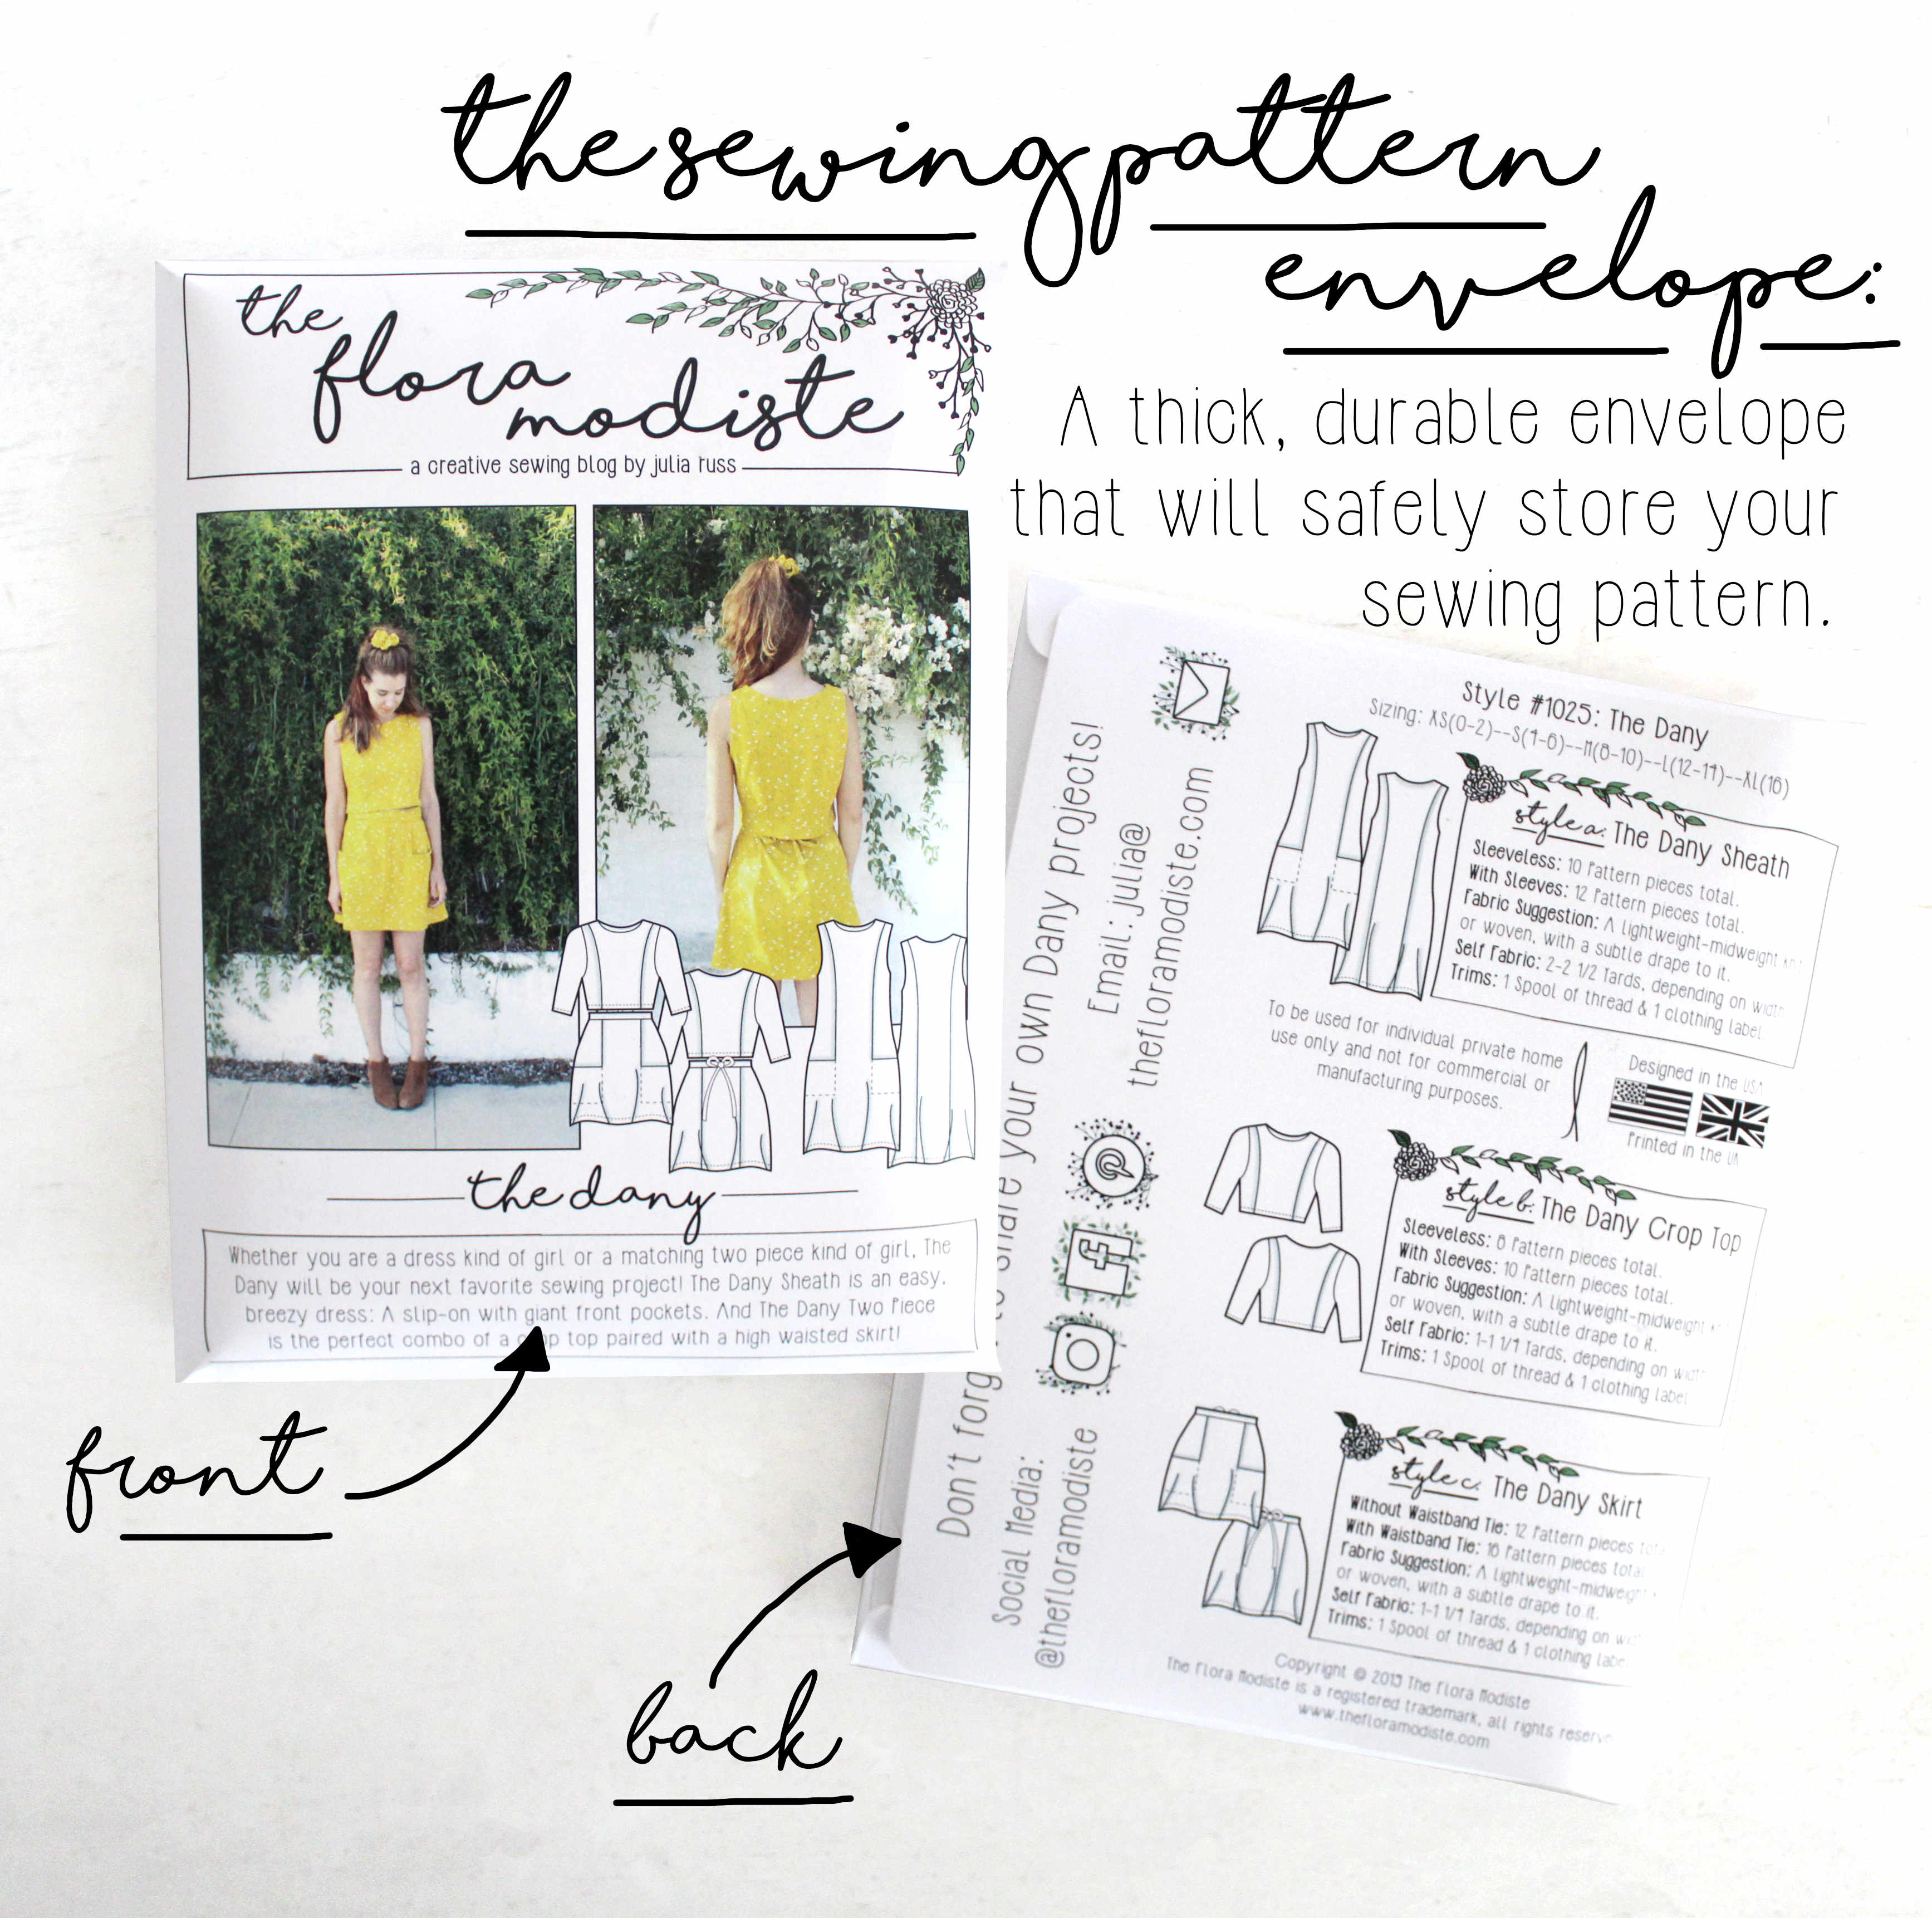 A Breakdown of the Dany DIY Sewing Project Kit: The Sewing Pattern Envelope